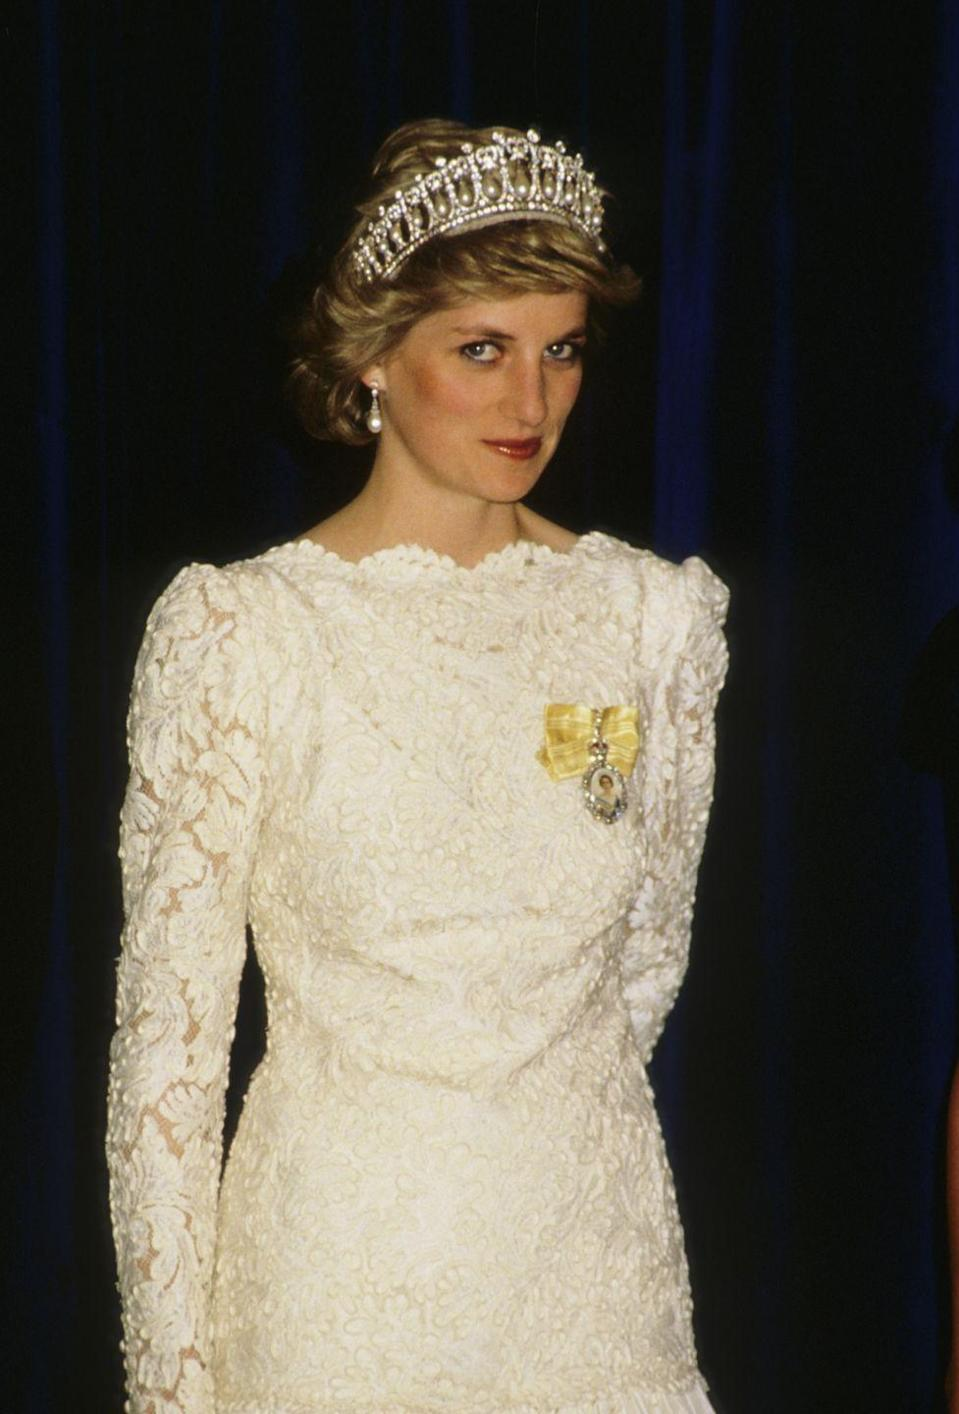 <p>On a visit to Vancouver, Canada, Diana chose a white long-sleeved lace gown. She paired the delicate dress with the Cambridge Lover's Knot tiara, matching pearl drop earrings, and her Royal Order. (The Lover's Knot was so heavy it hurt Diana's head, but it remained one of her favorites regardless.)</p>